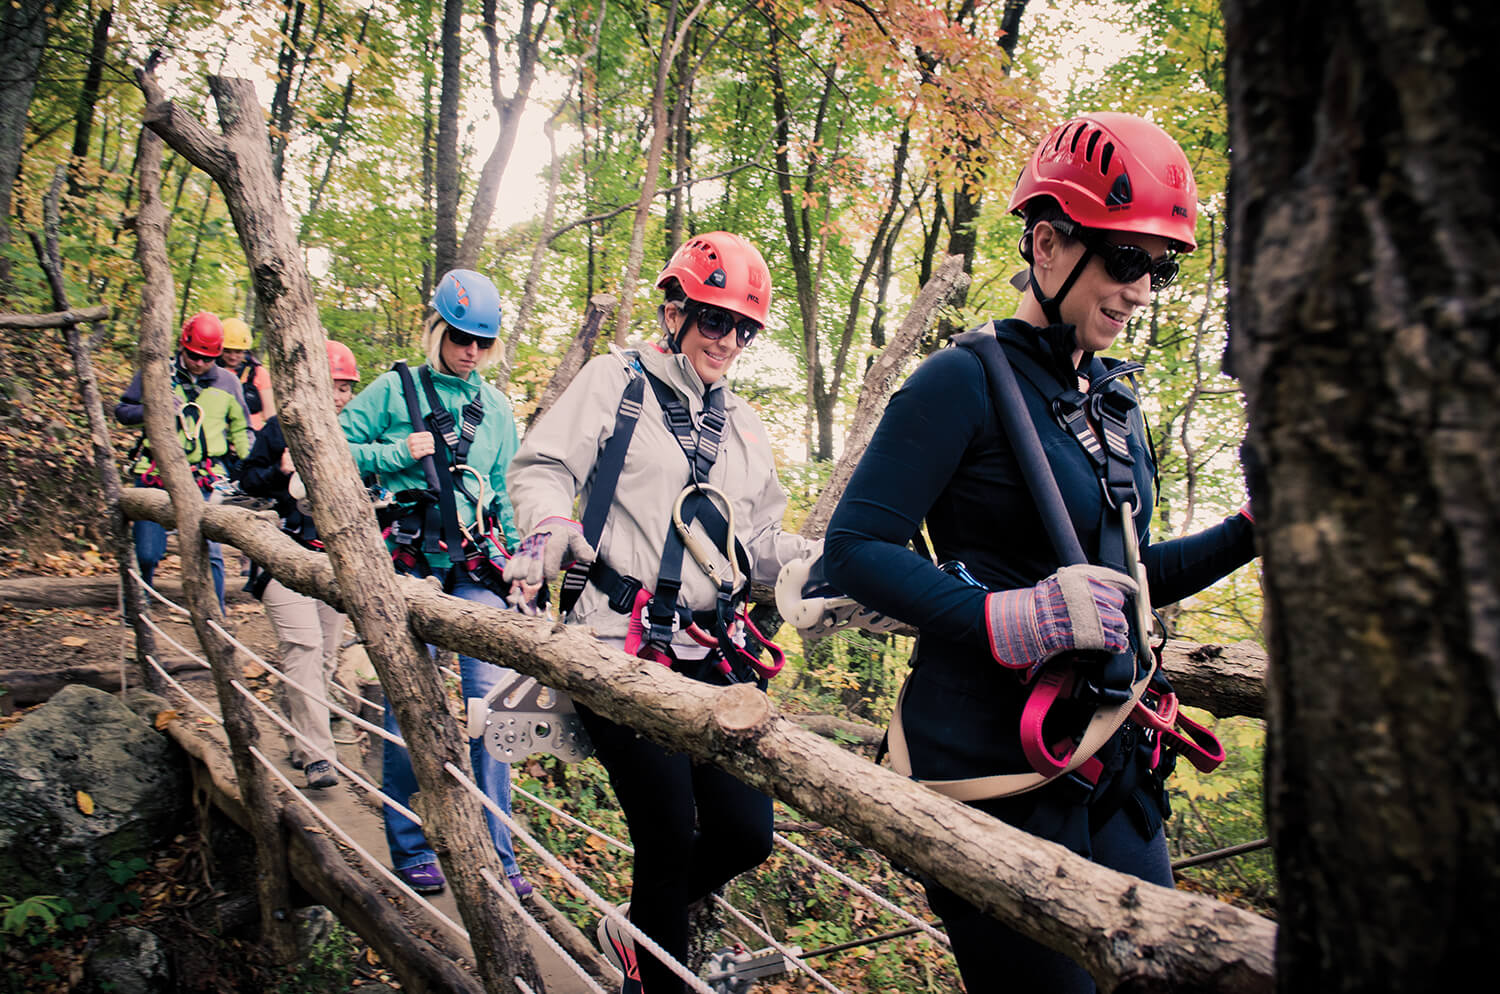 Don't look down: The Moody Cove Adventure lets you zip, rappel, hike, and more during your three-and-a-half hour tour.